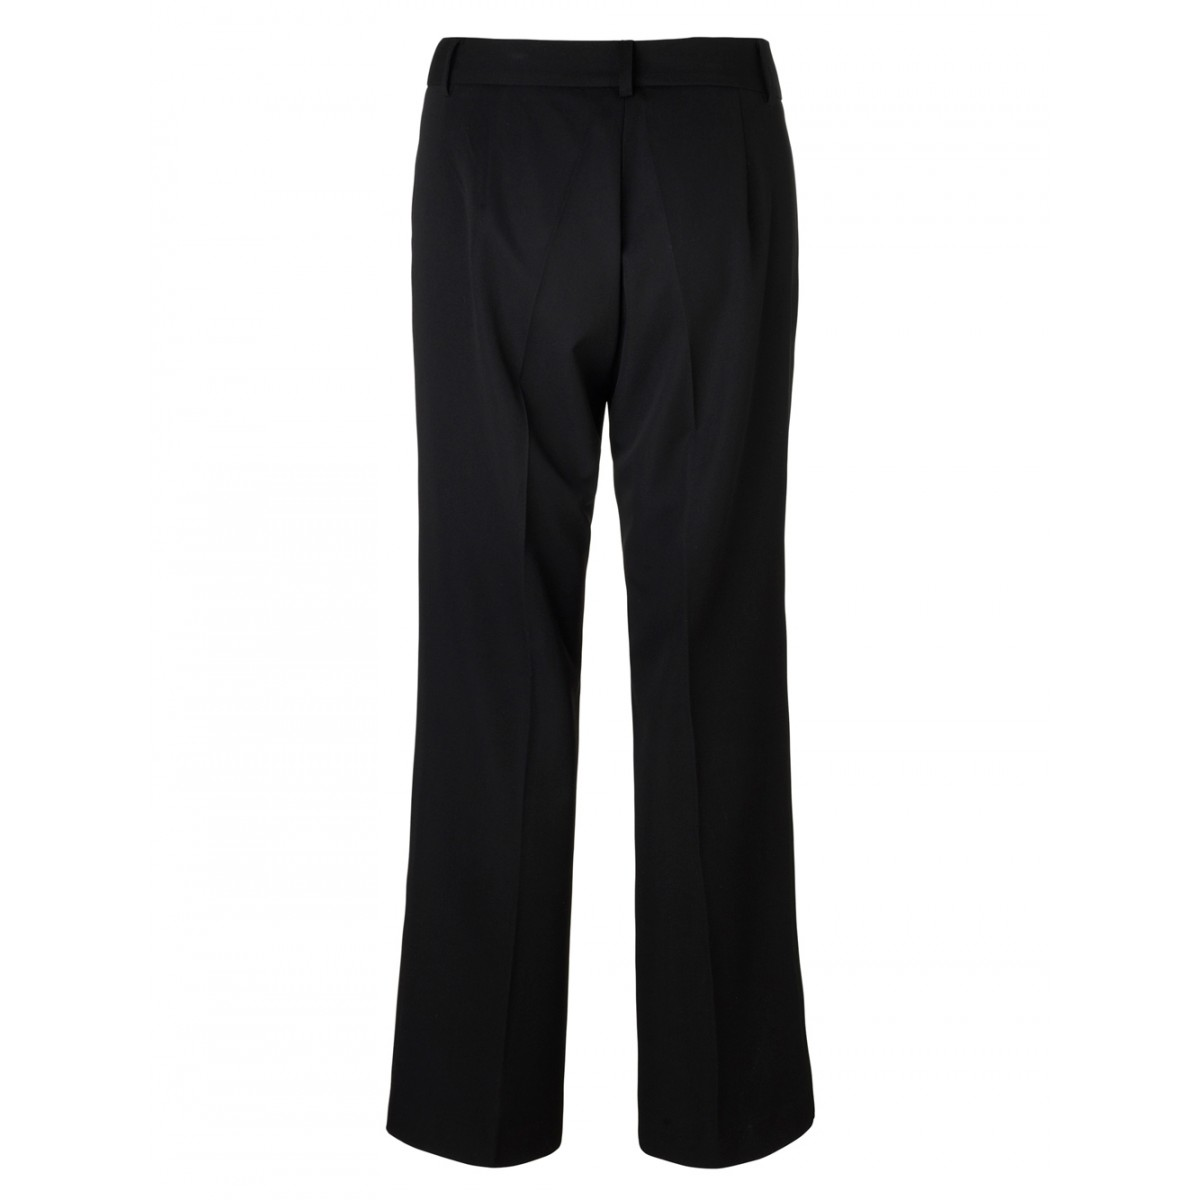 Rosemunde 4412-010 Trousers Black-35